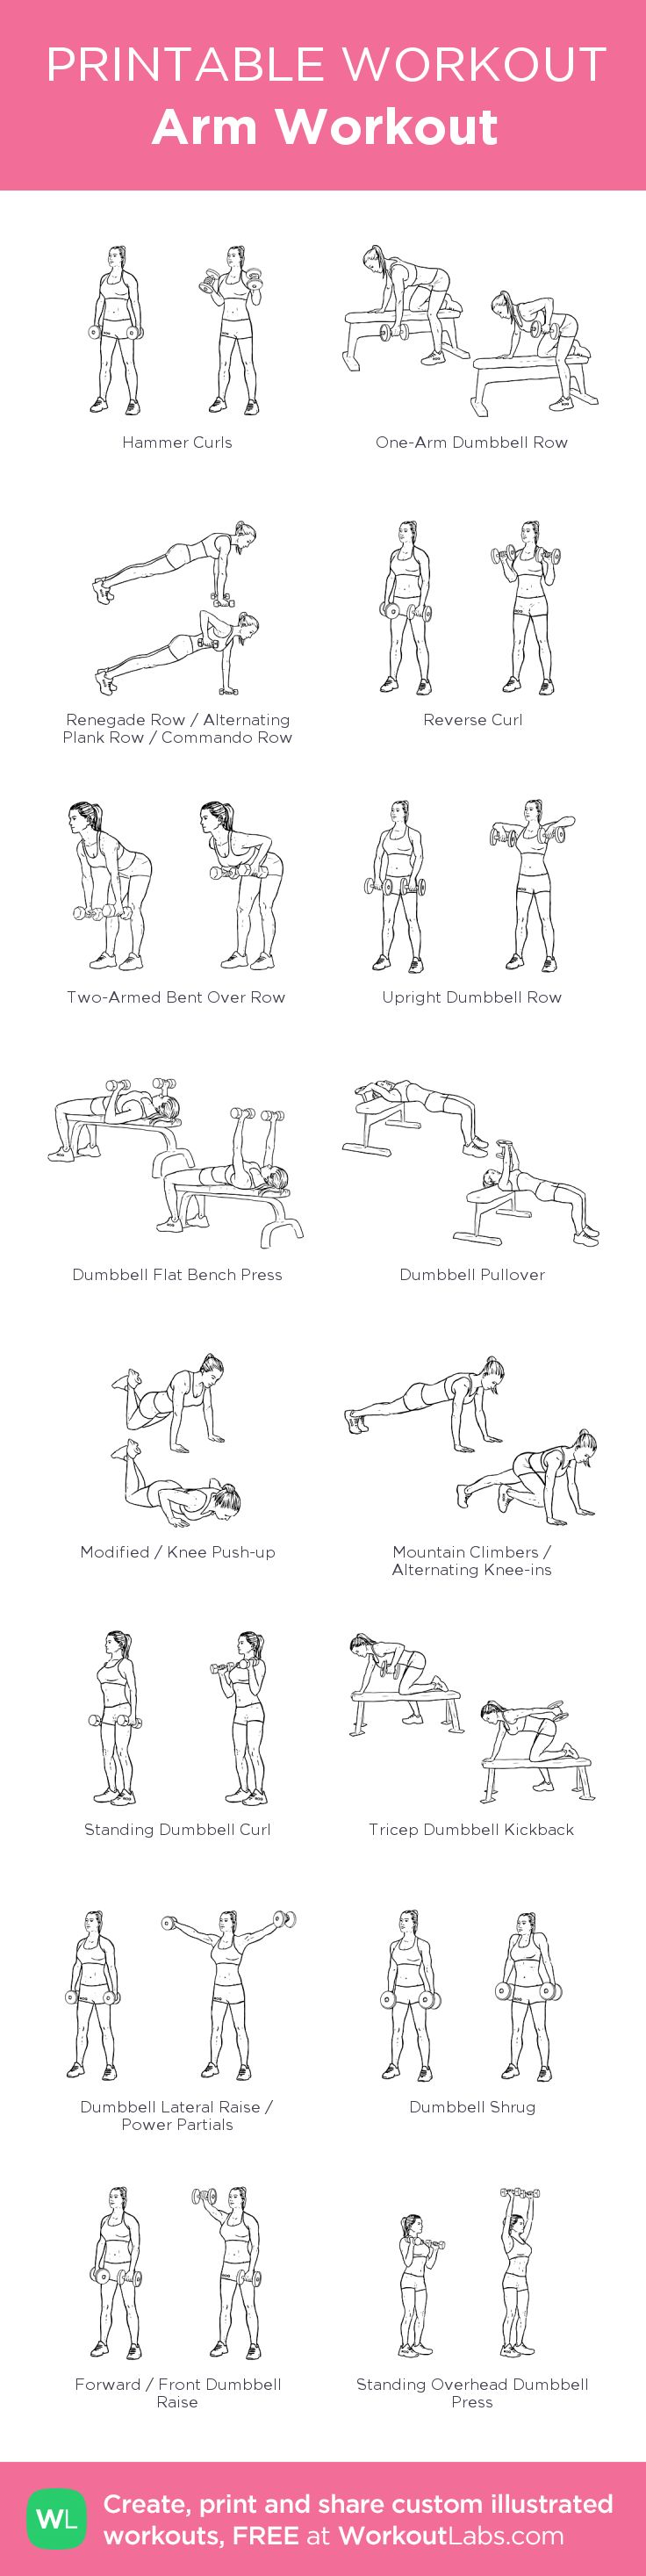 Arm Workout: my visual workout created at WorkoutLabs.com • Click through to customize and download as a FREE PDF! #customworkout